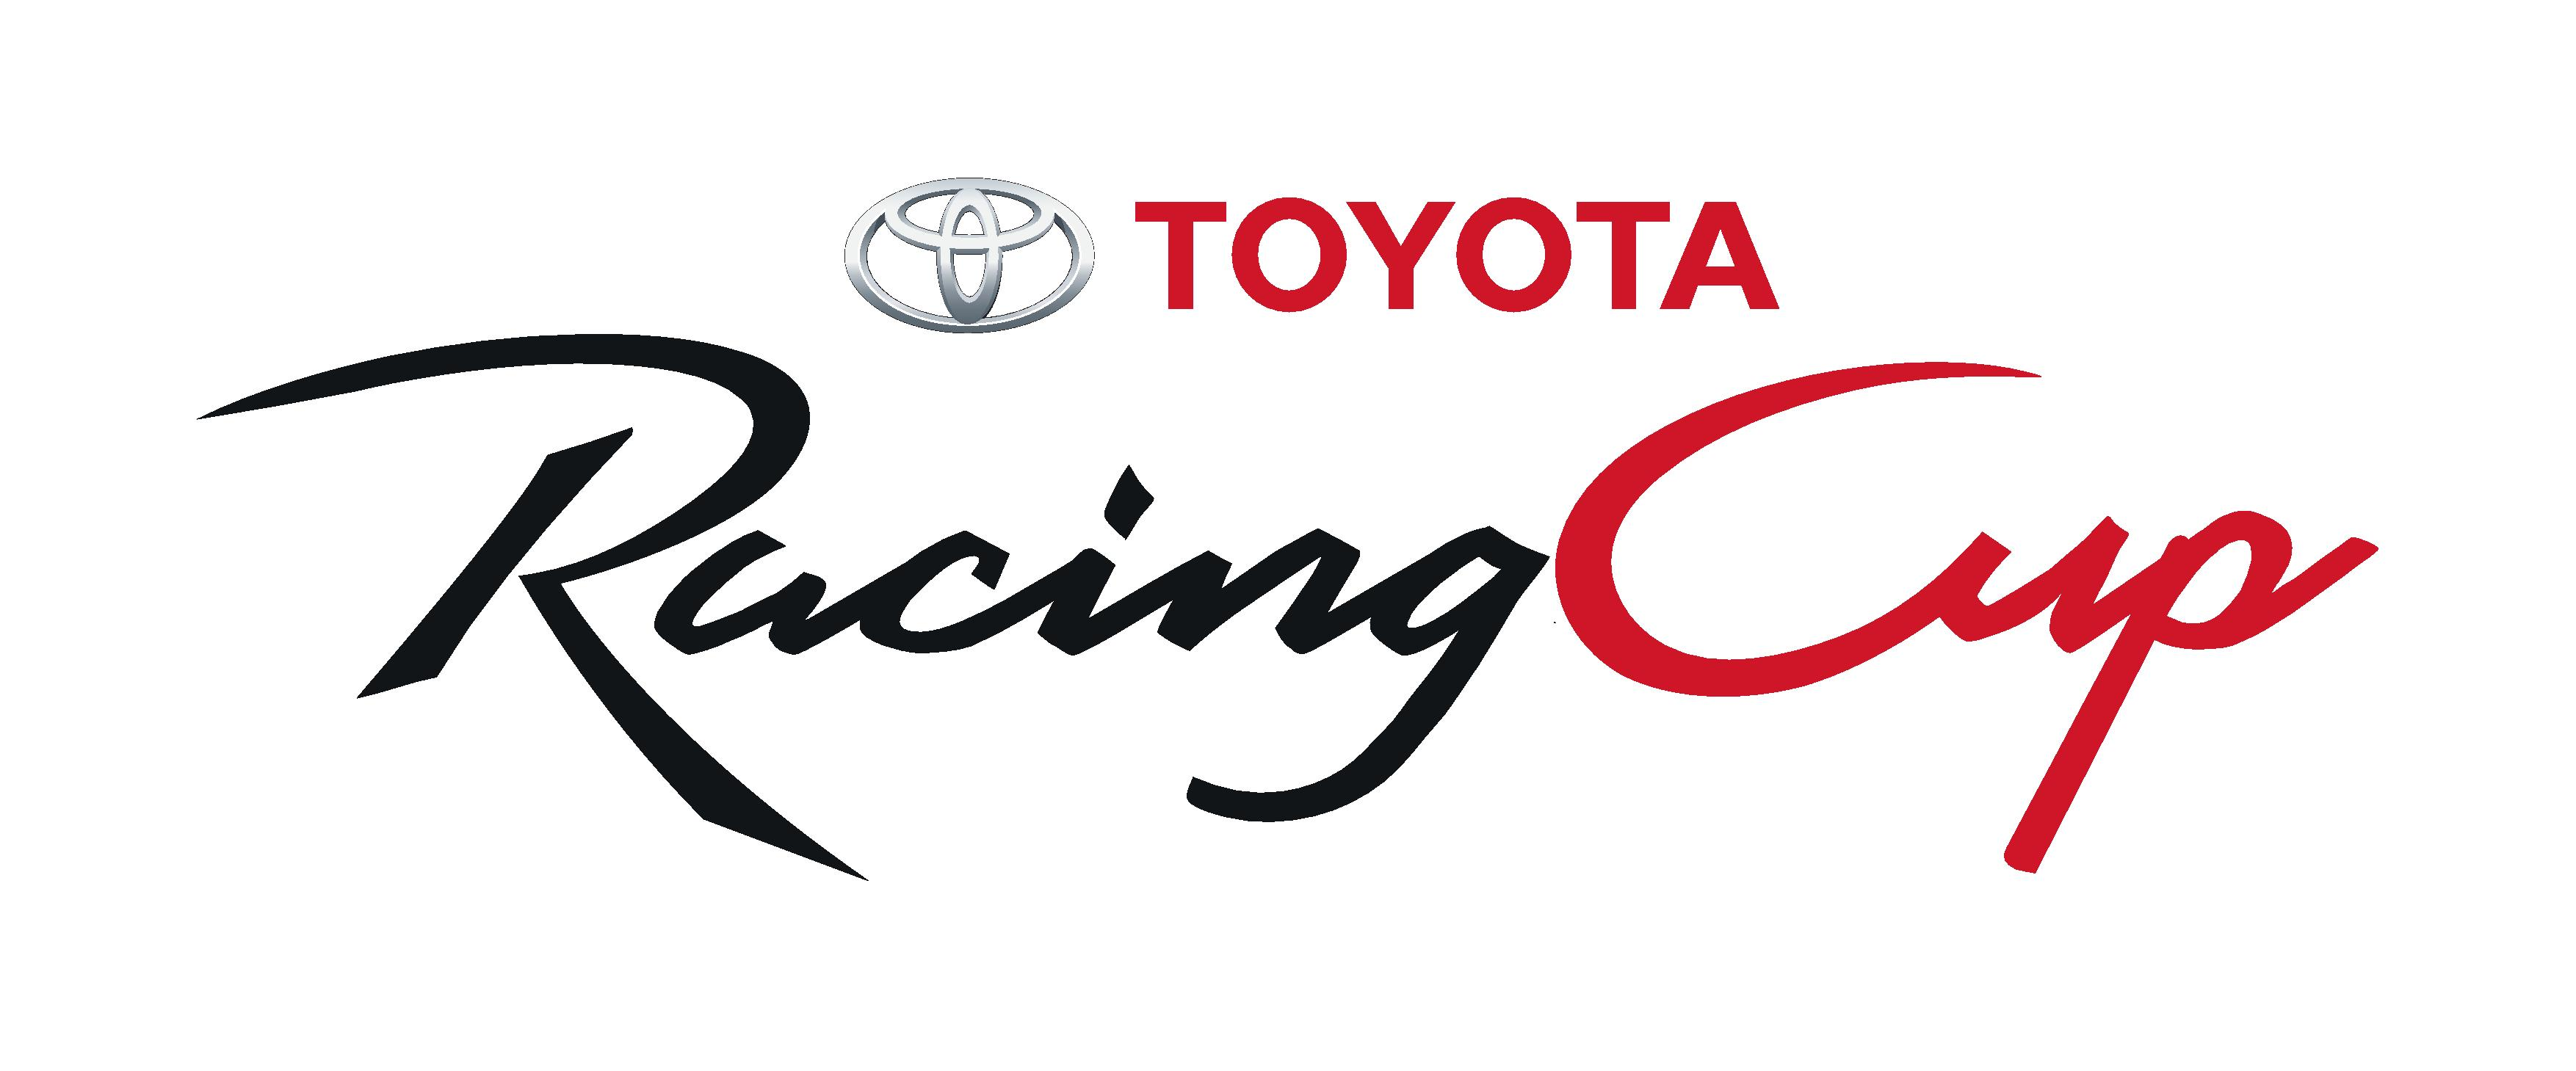 Toyota Racing Cup 2019 logo page 001